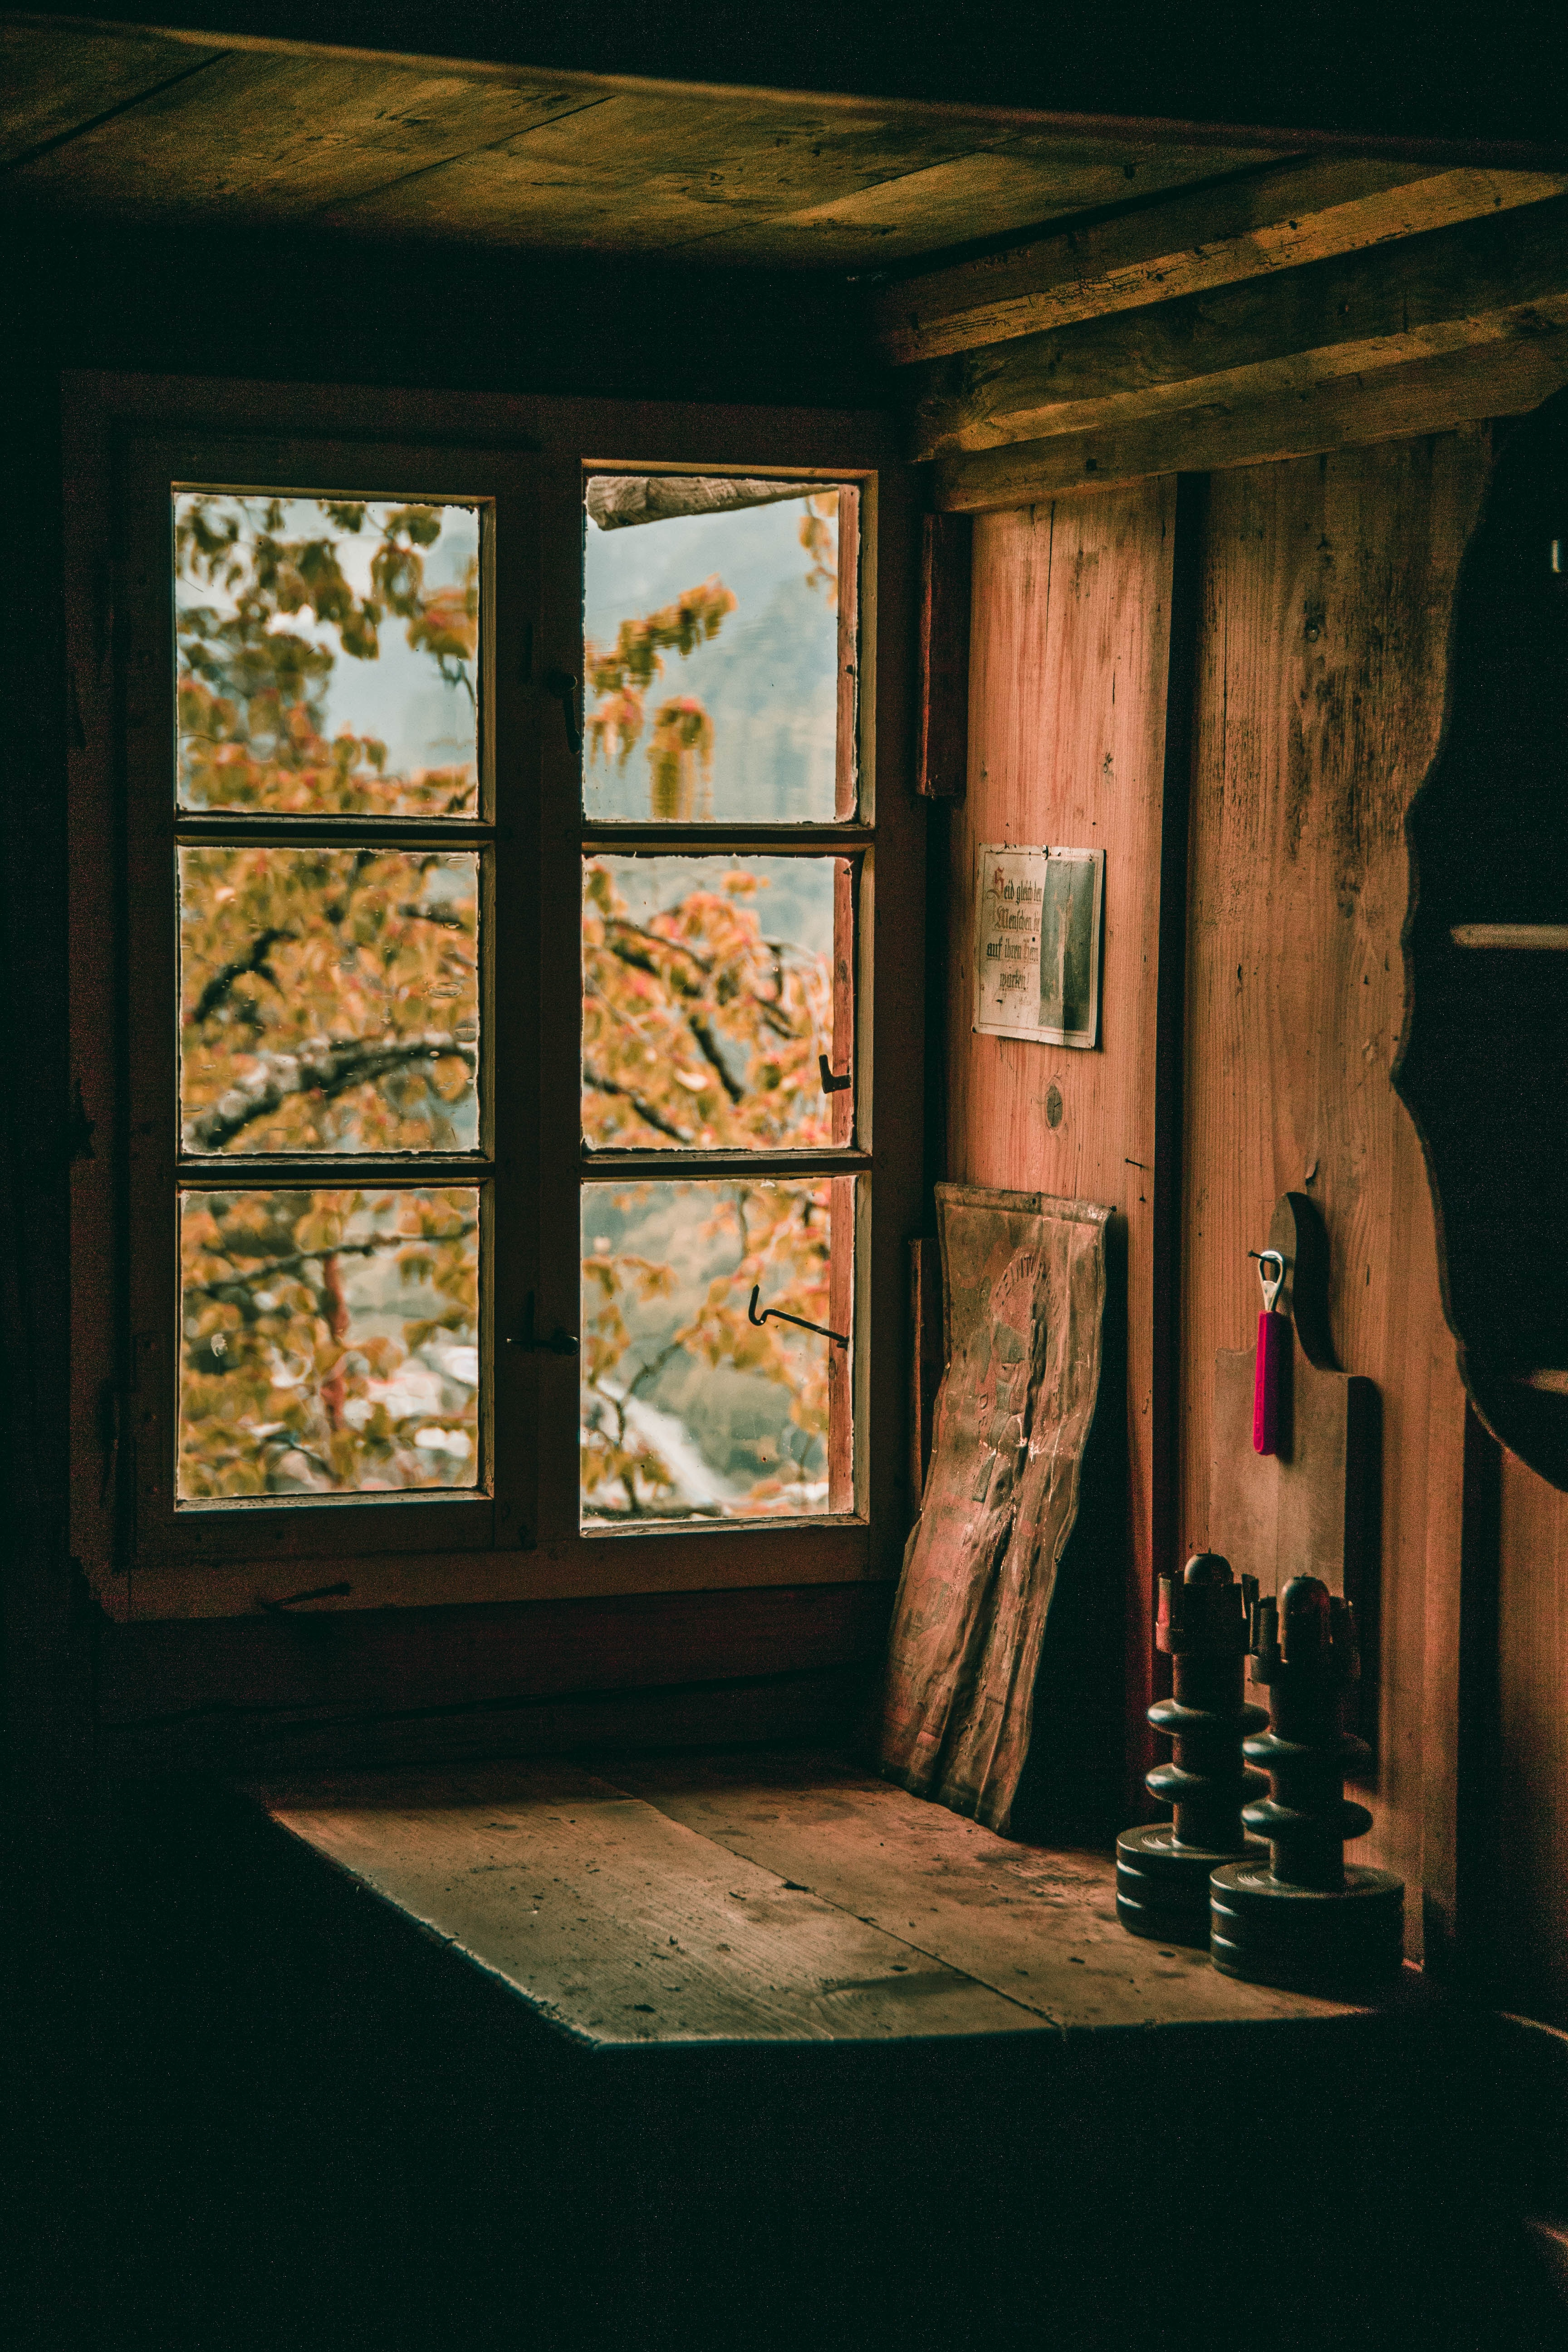 157335 Screensavers and Wallpapers Room for phone. Download Miscellanea, Miscellaneous, Window, Room, Interior, Wood, Wooden pictures for free